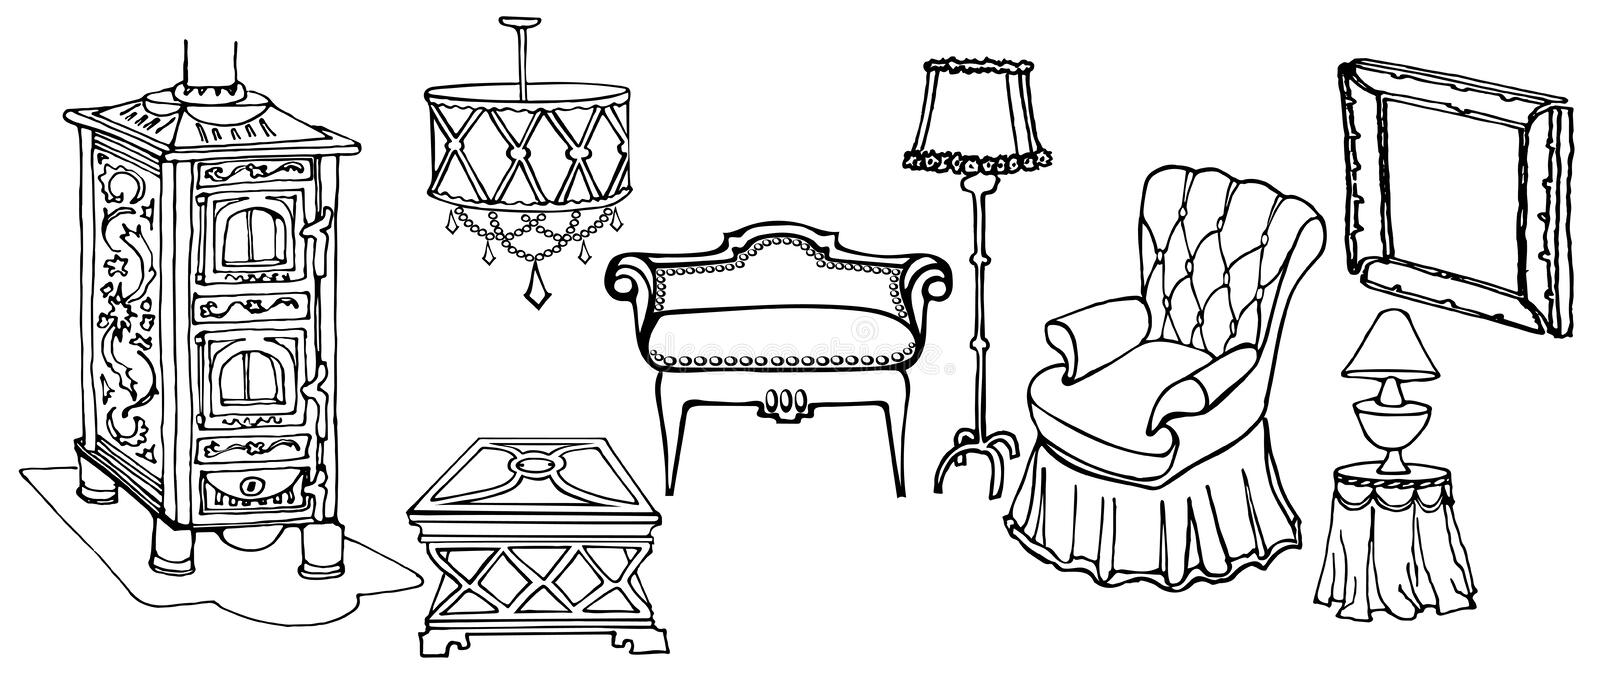 Sketch Set Of Elegant Furniture And Accessories For The Old Art Deco Living  Room With Stove, Armchair And A Lamp Black In White Background